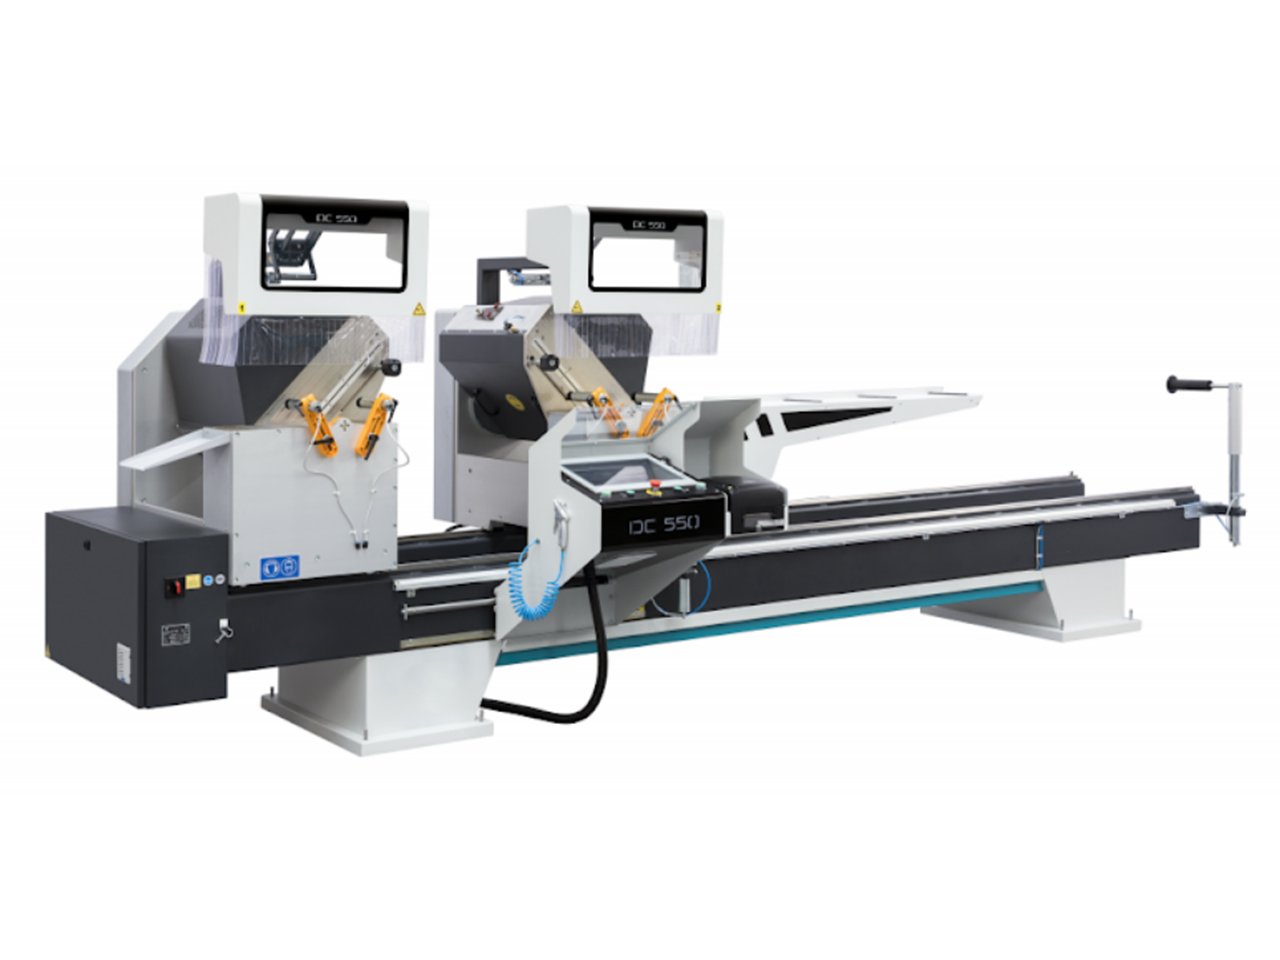 ZIGMA-02 AP-550 CNC Double Head Miter Saw – 22 (550 mm) 1